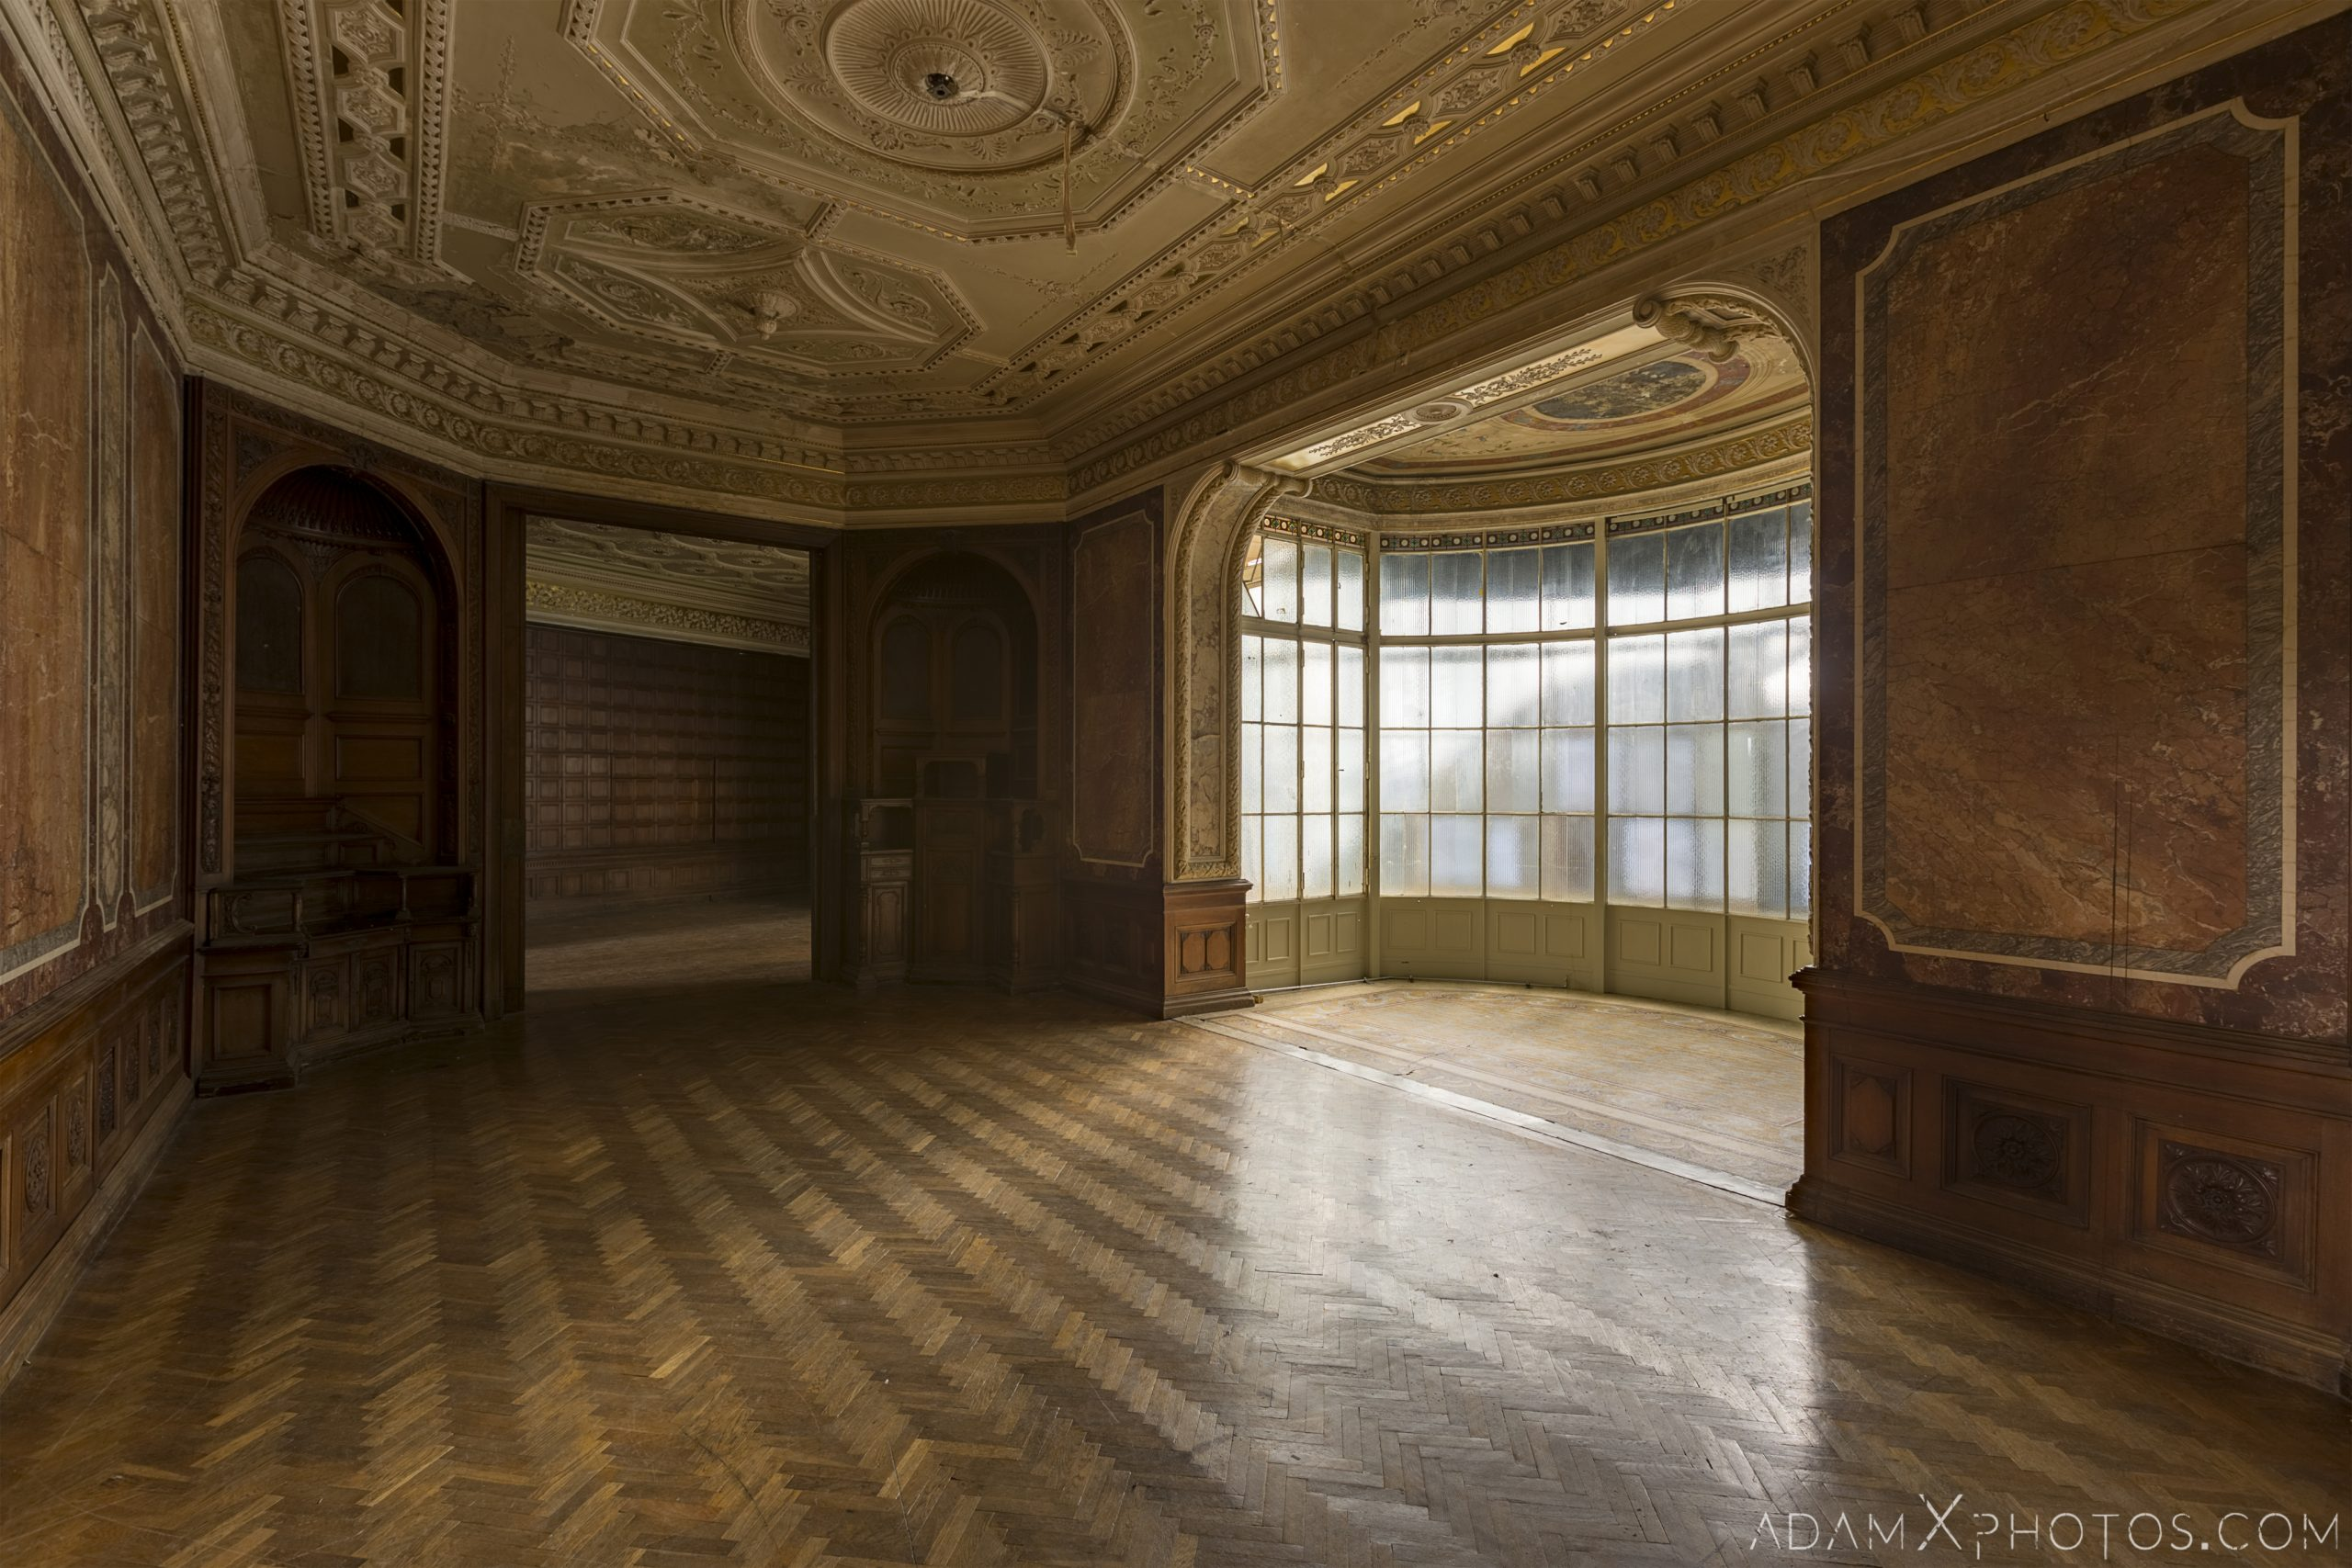 Bay window marble wooden panels parquet Adria Palace Budapest Hungary Adam X Urbex Urban Exploration Access 2018 Blade Runner 2049 Abandoned decay ruins lost forgotten derelict location creepy haunting eerie security ornate grand neo baroque